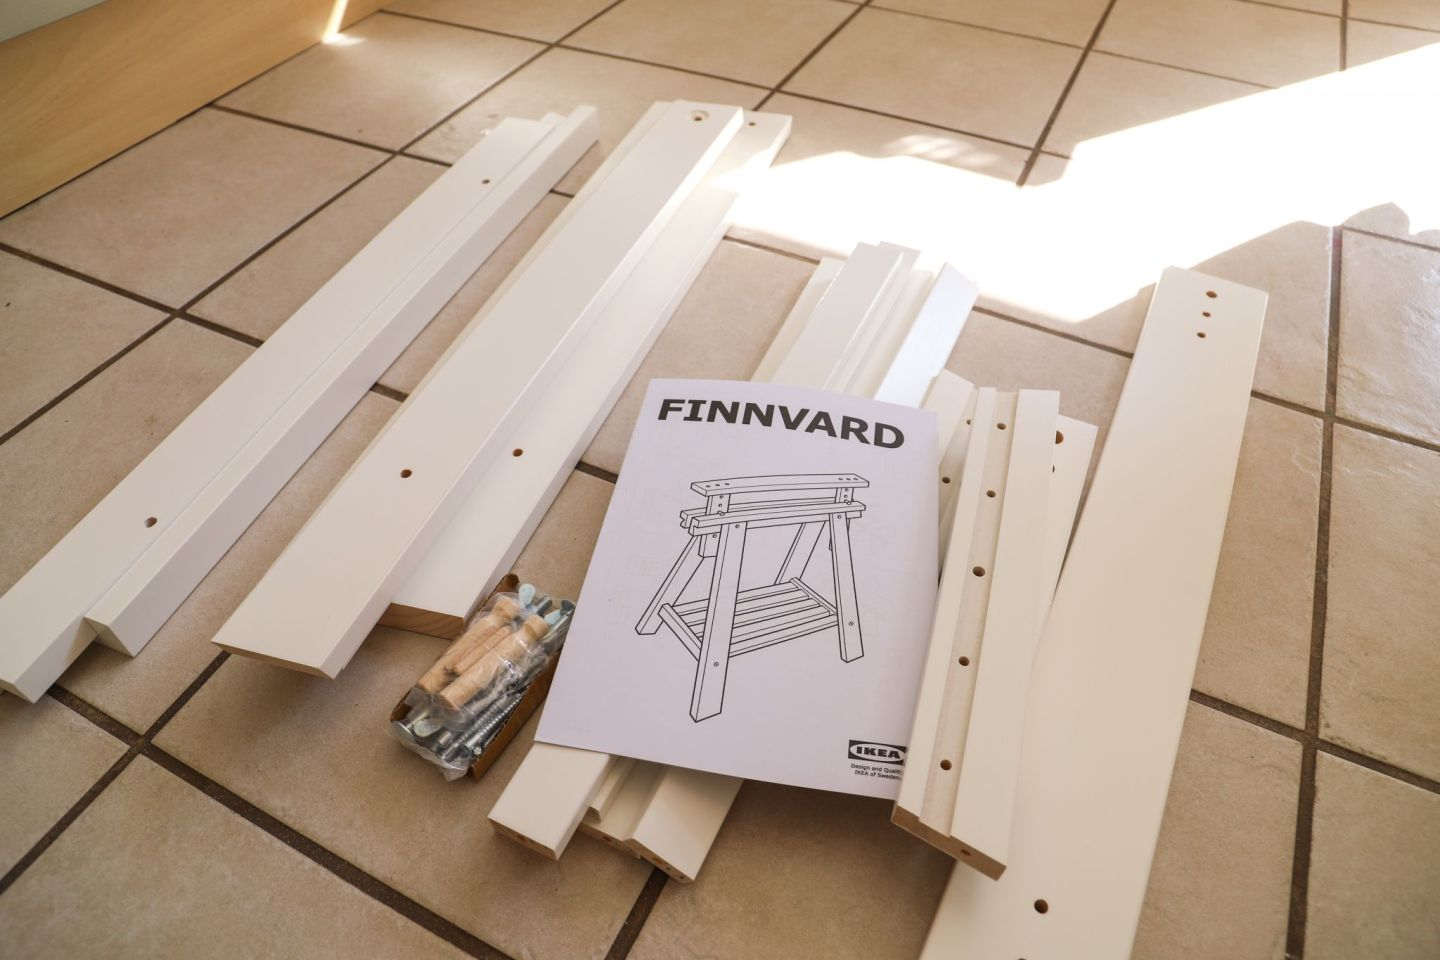 Ikea Finnvard table legs hack